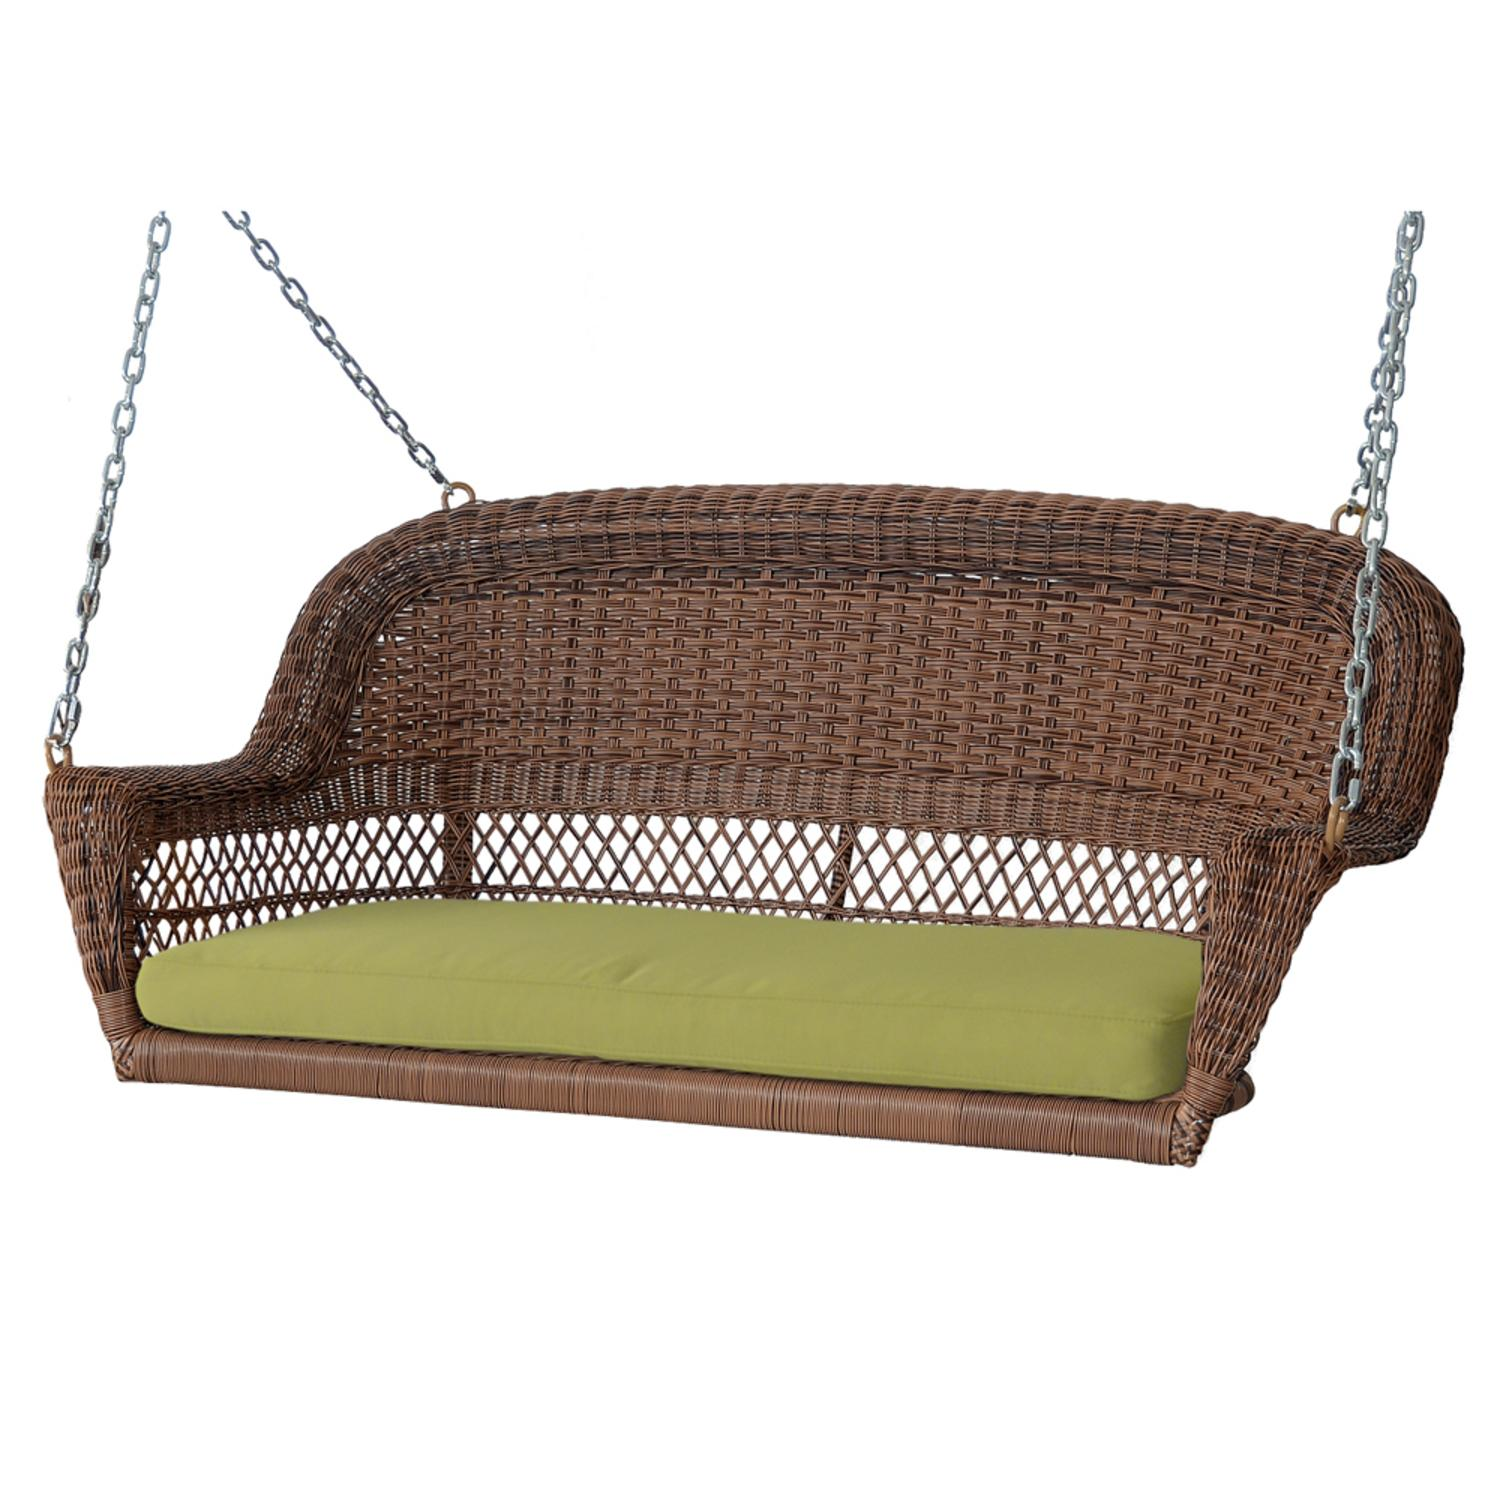 "51.5"" Hand Woven Honey Brown Resin Wicker Outdoor Porch Swing with Green Cushion by Porch Swings"